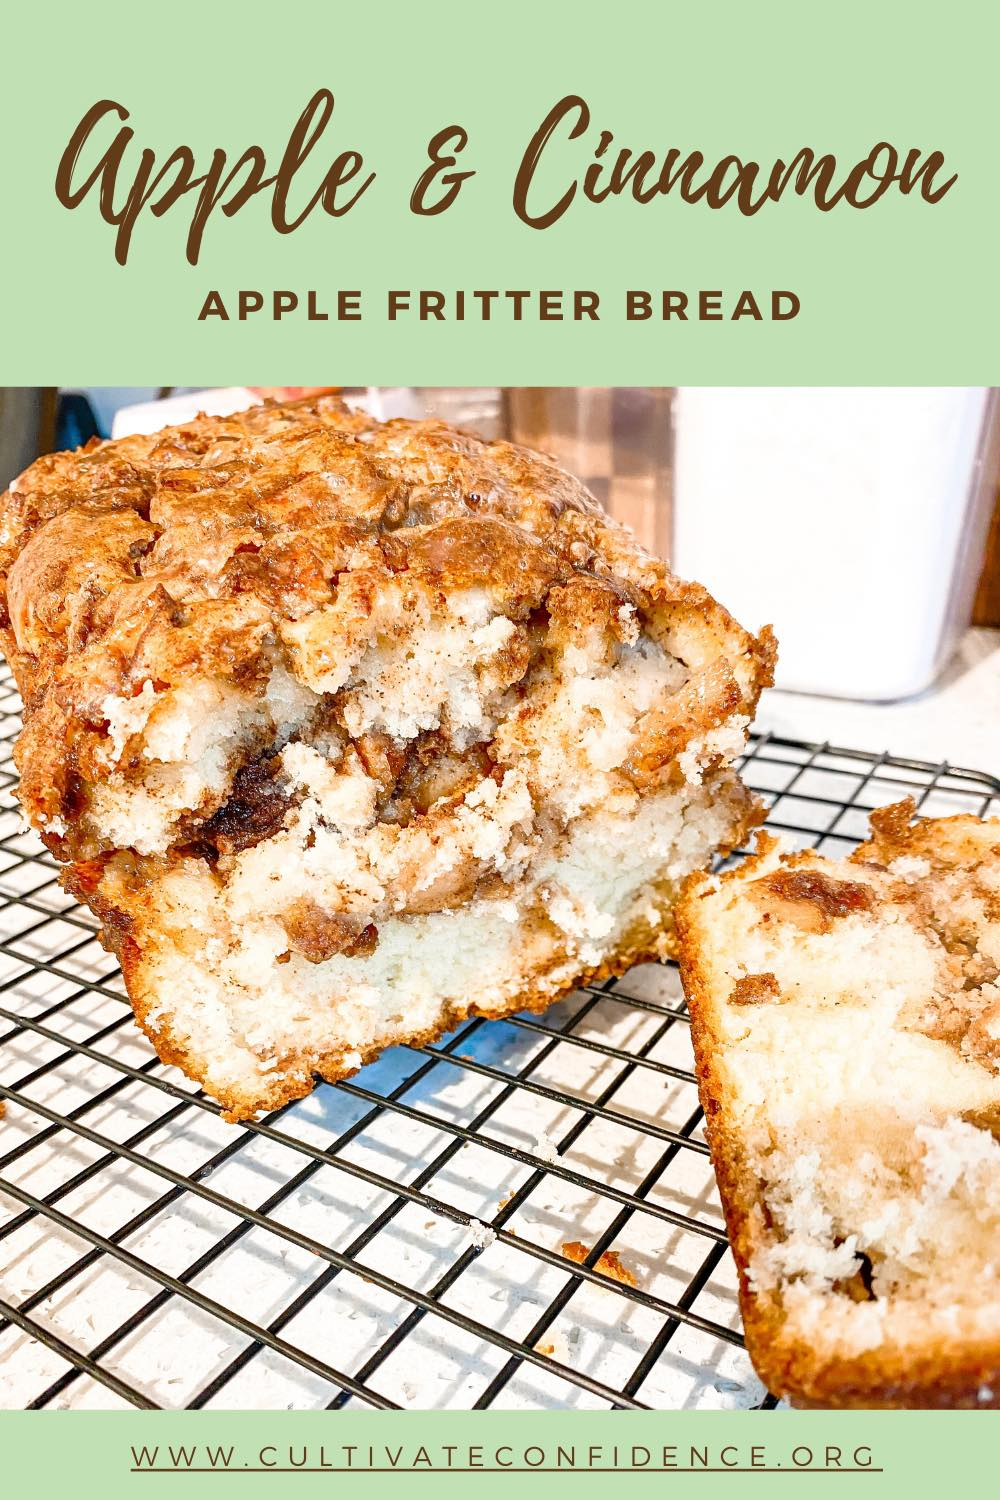 How to Make Apple Fritter Bread